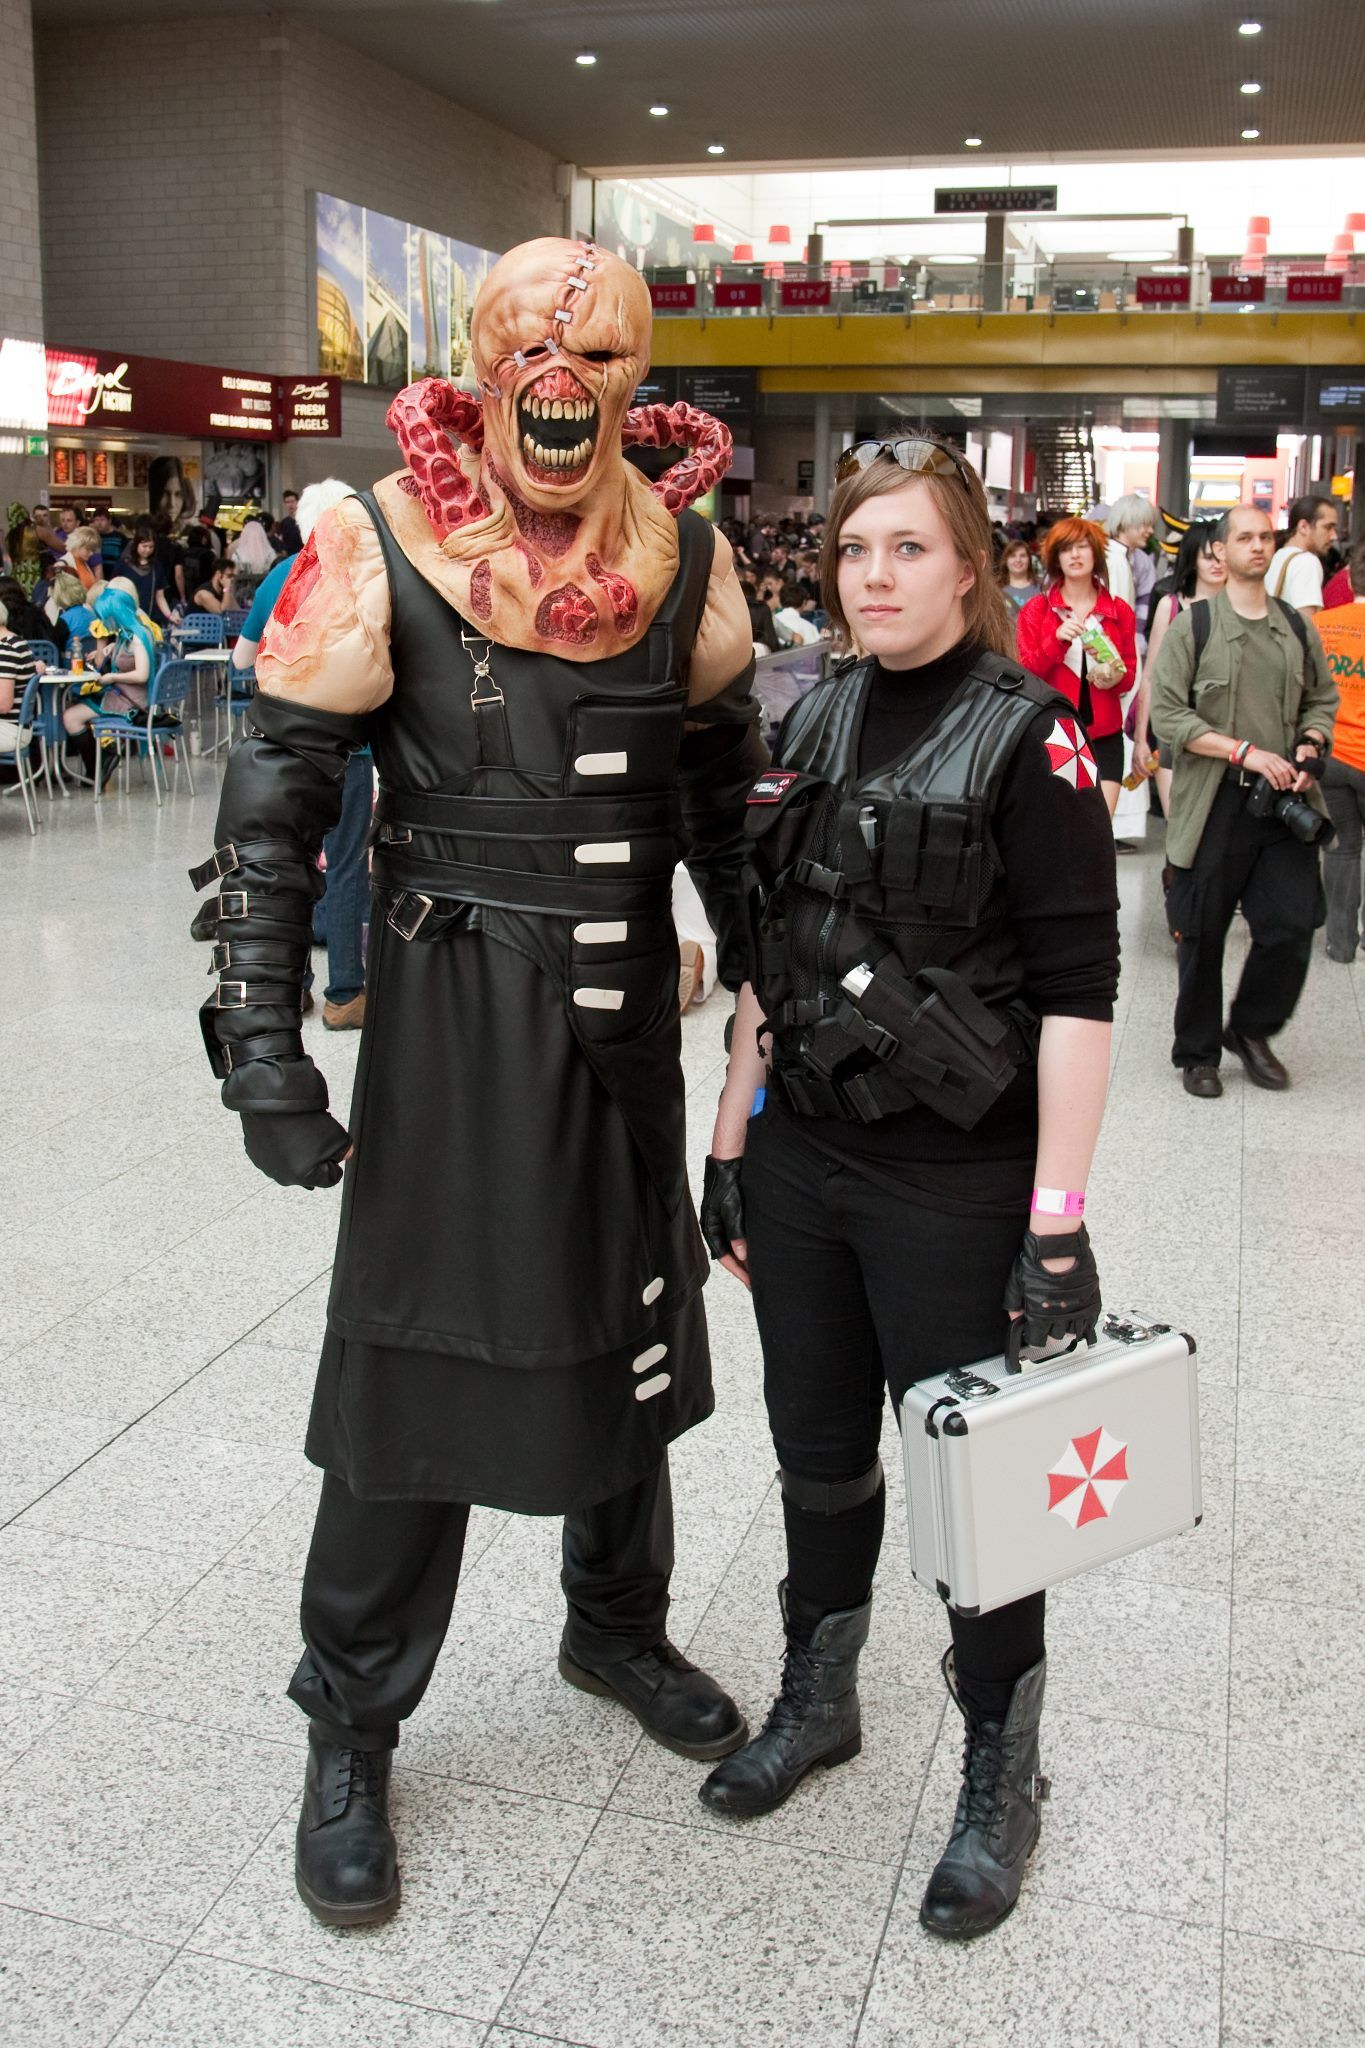 resident evil cosplay gaming cosplay pinterest